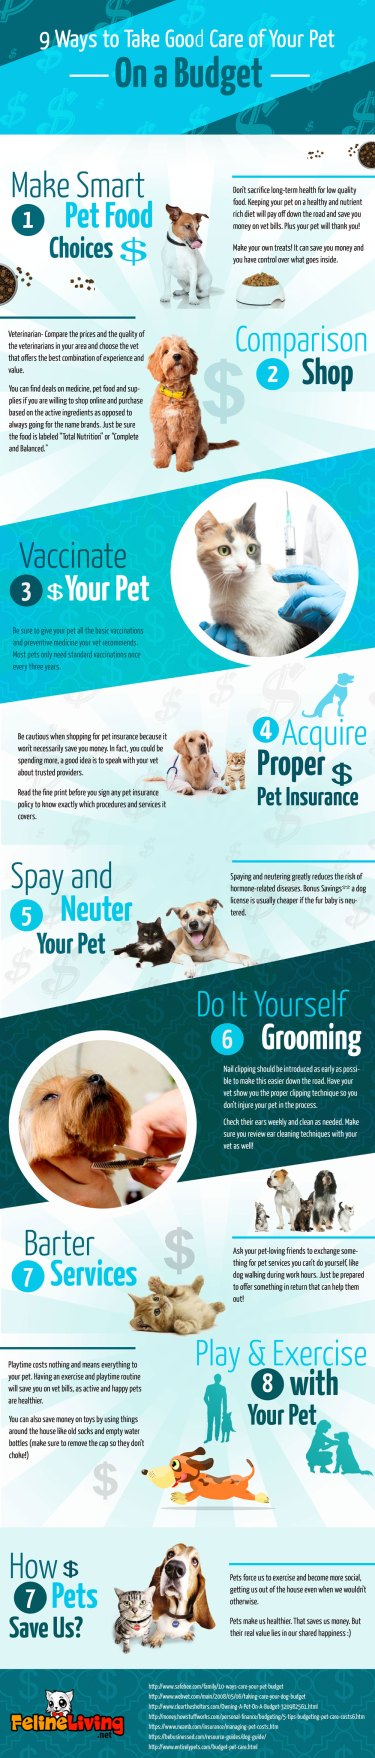 Simple Ways To Care For Your Pet On A Budget